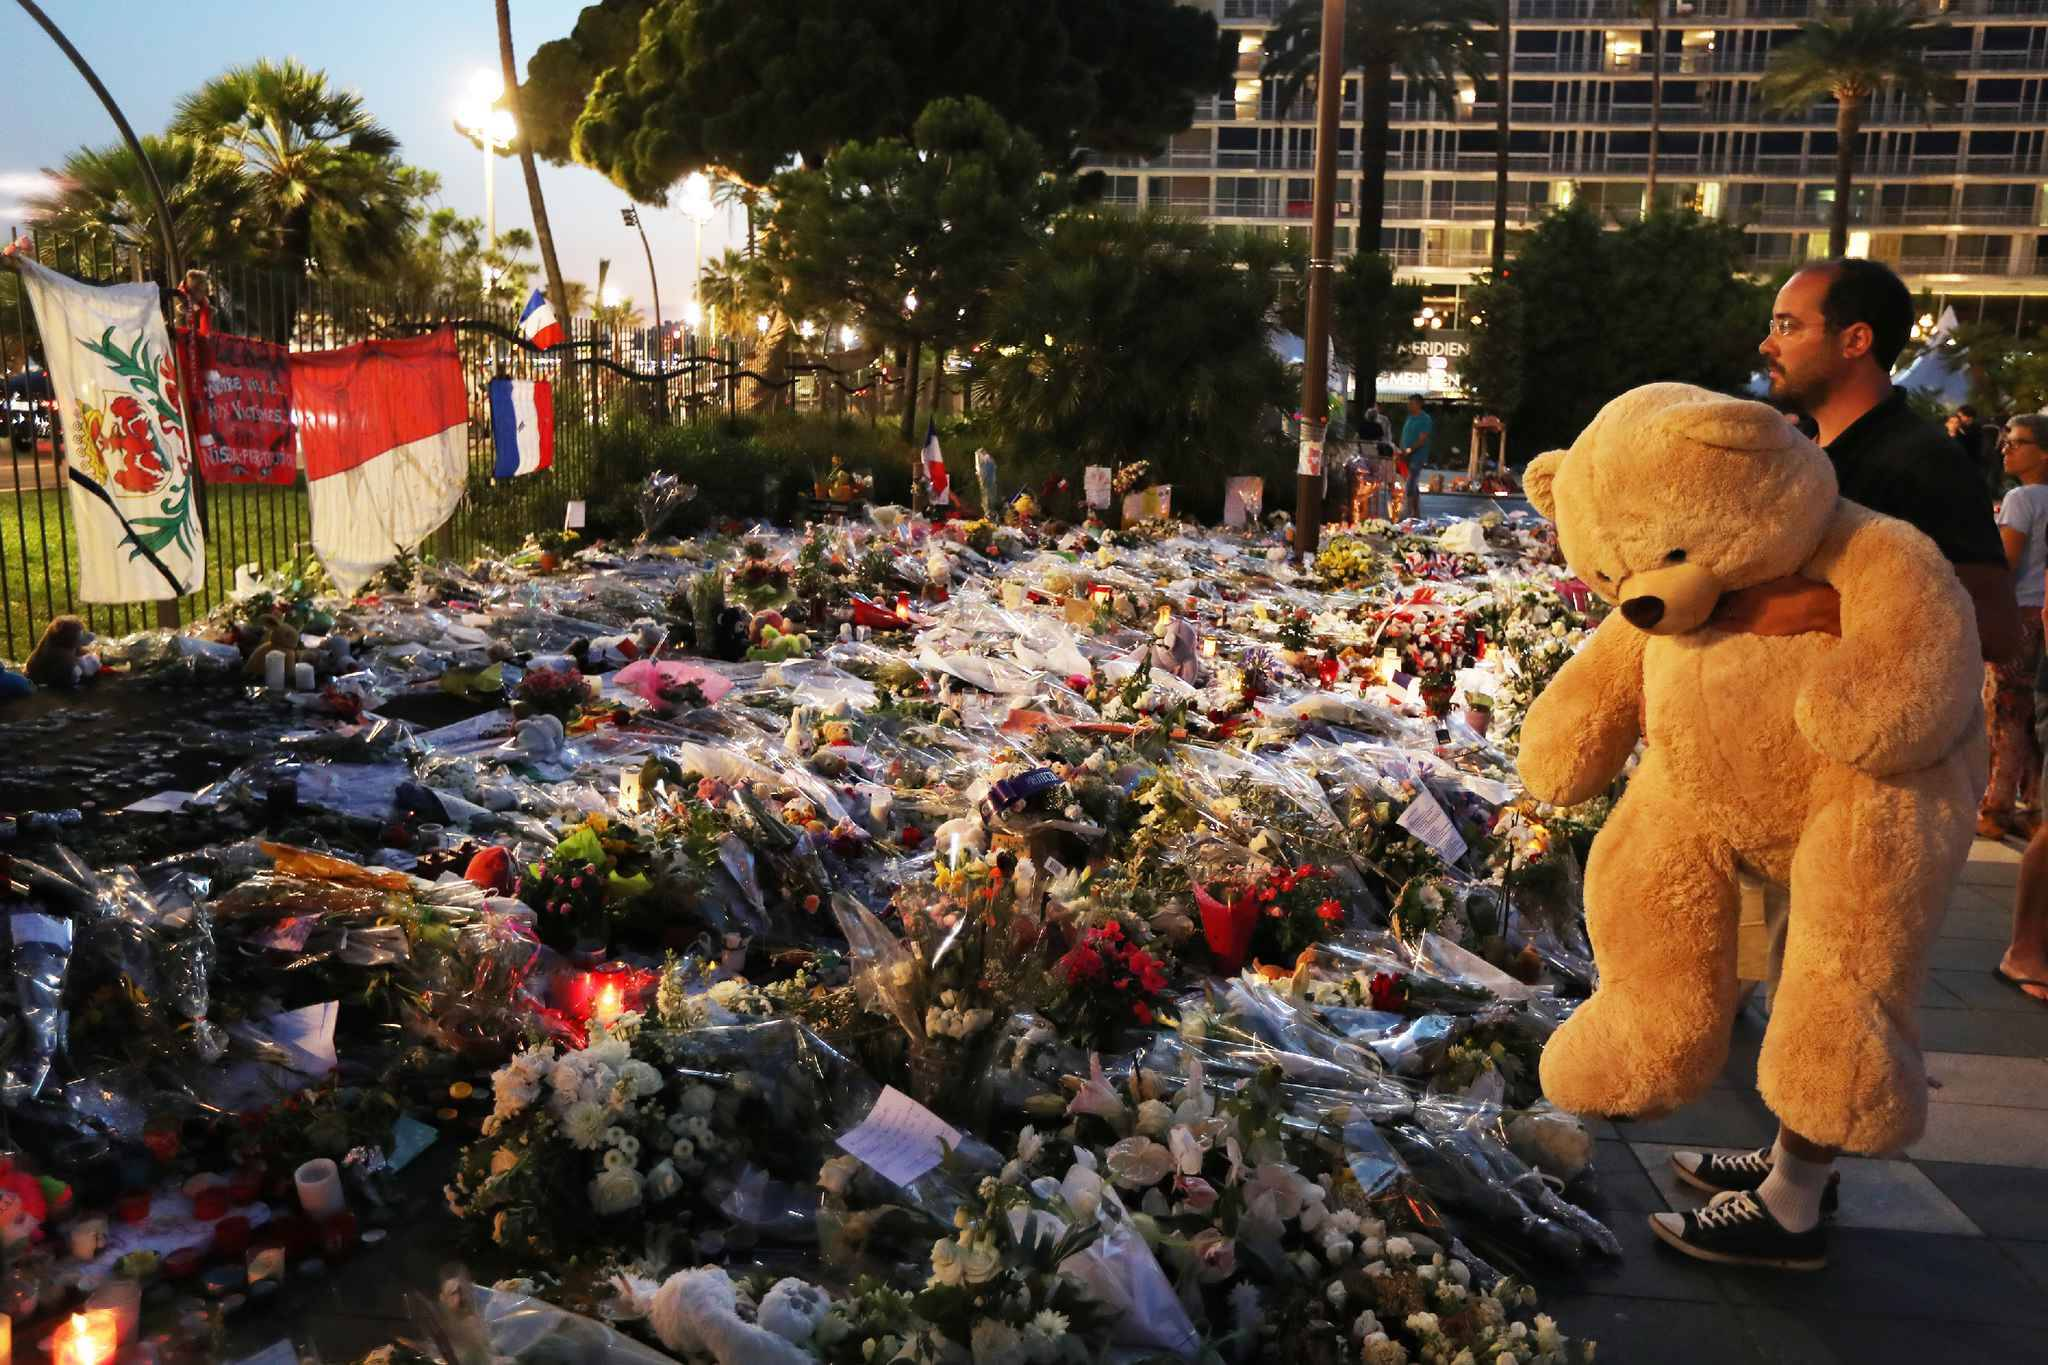 A man holds a giant teddy bear in front of a makeshift memorial near the Promenade des Anglais in Nice on July 19, 2016 in tribute to the victims of the Bastille Day attack.  President Francois Hollande said on July 19 he was willing to extend France's state of emergency for another six months following the Bastille Day massacre, as lawmakers prepared to debate the country's tough security laws. / AFP PHOTO / VALERY HACHE